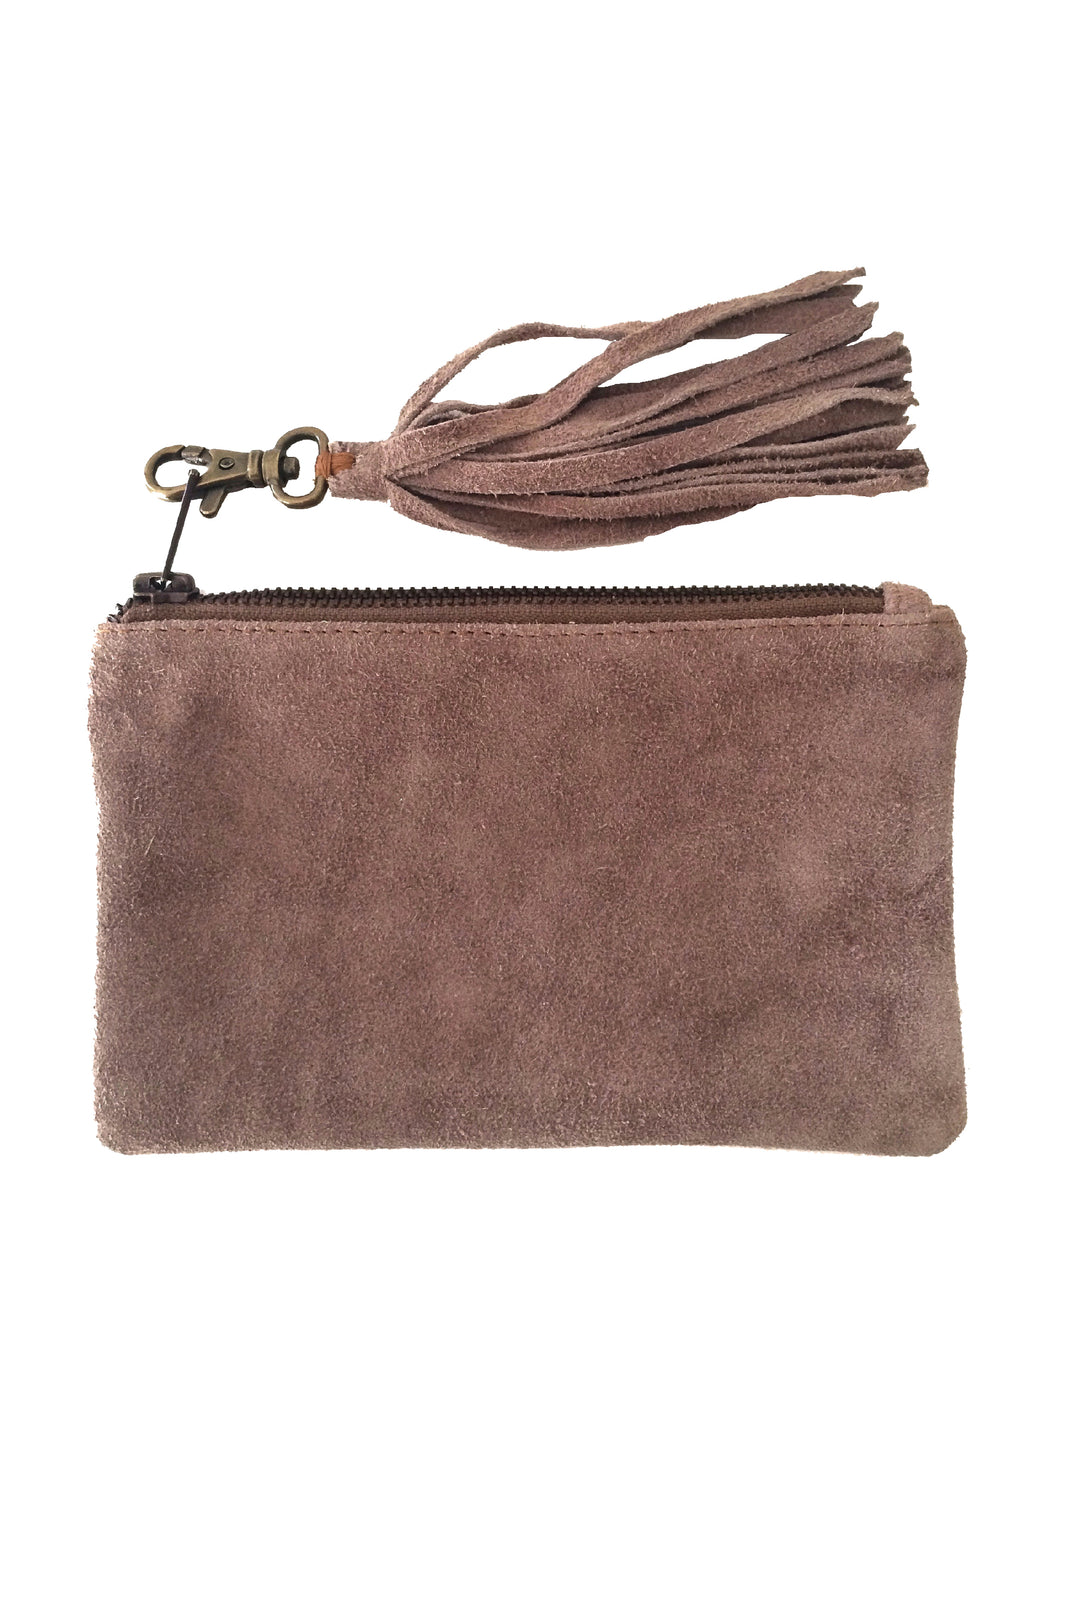 clearance: Suede Satchel pebble